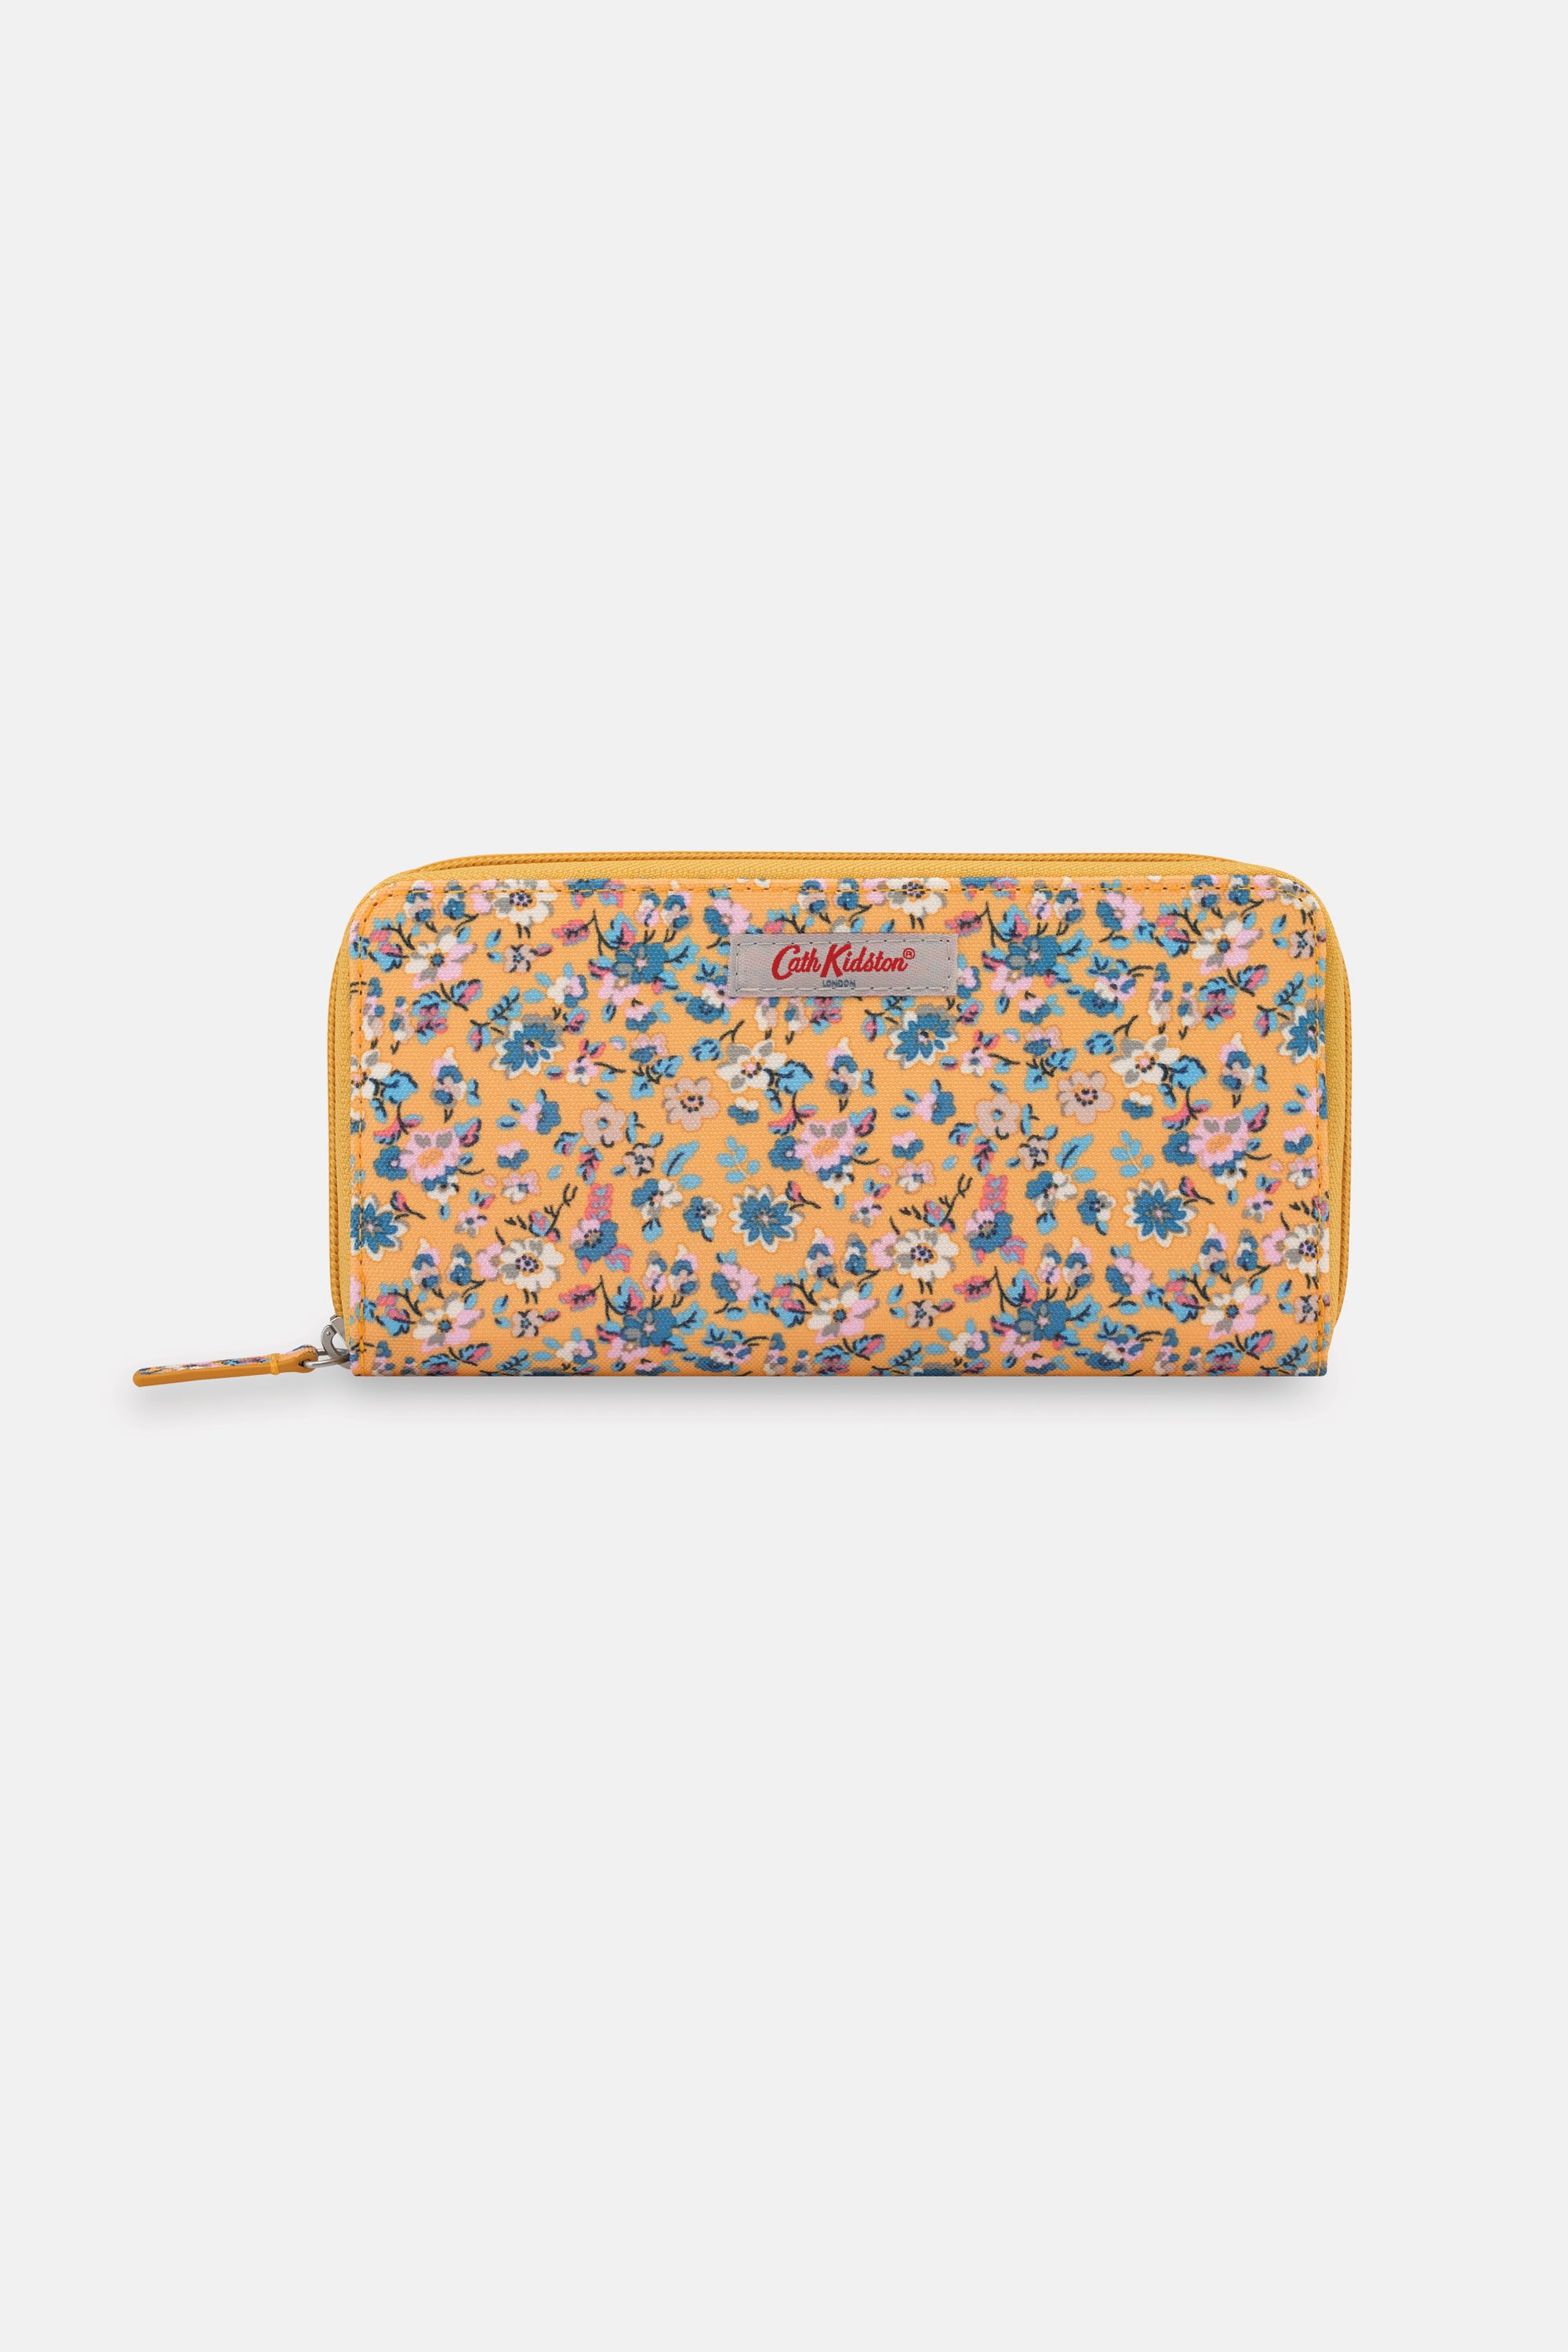 Cath Kidston Woodland Ditsy Recycled Continental Zip Wallet in Deep Yellow